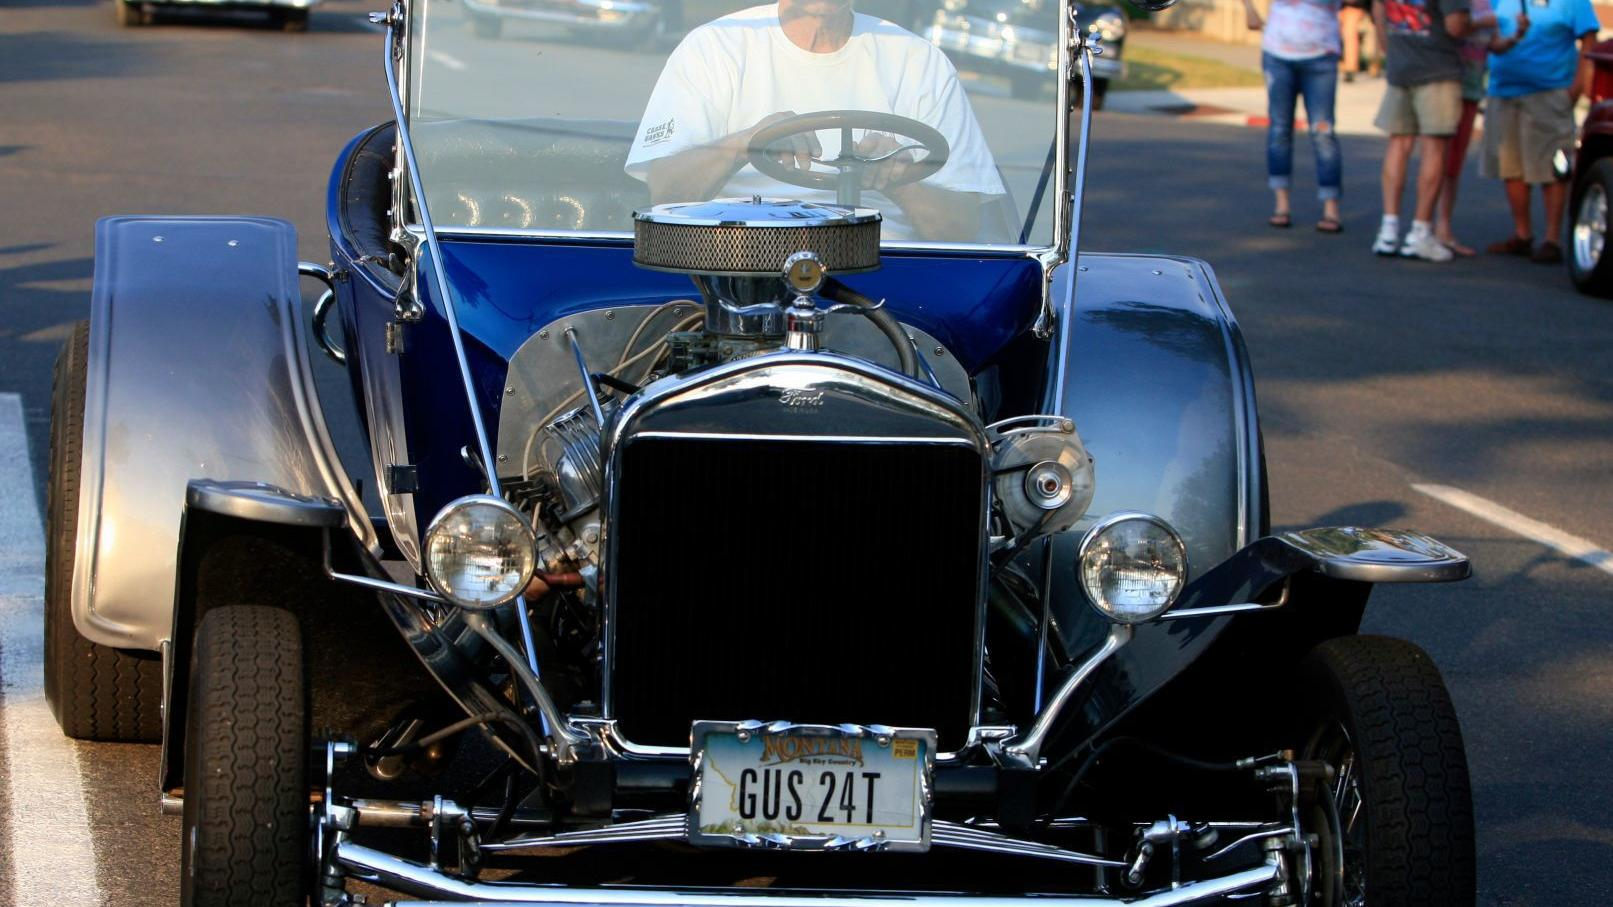 Rocky Mountain Model T Ford Fun Tour coming to Billings